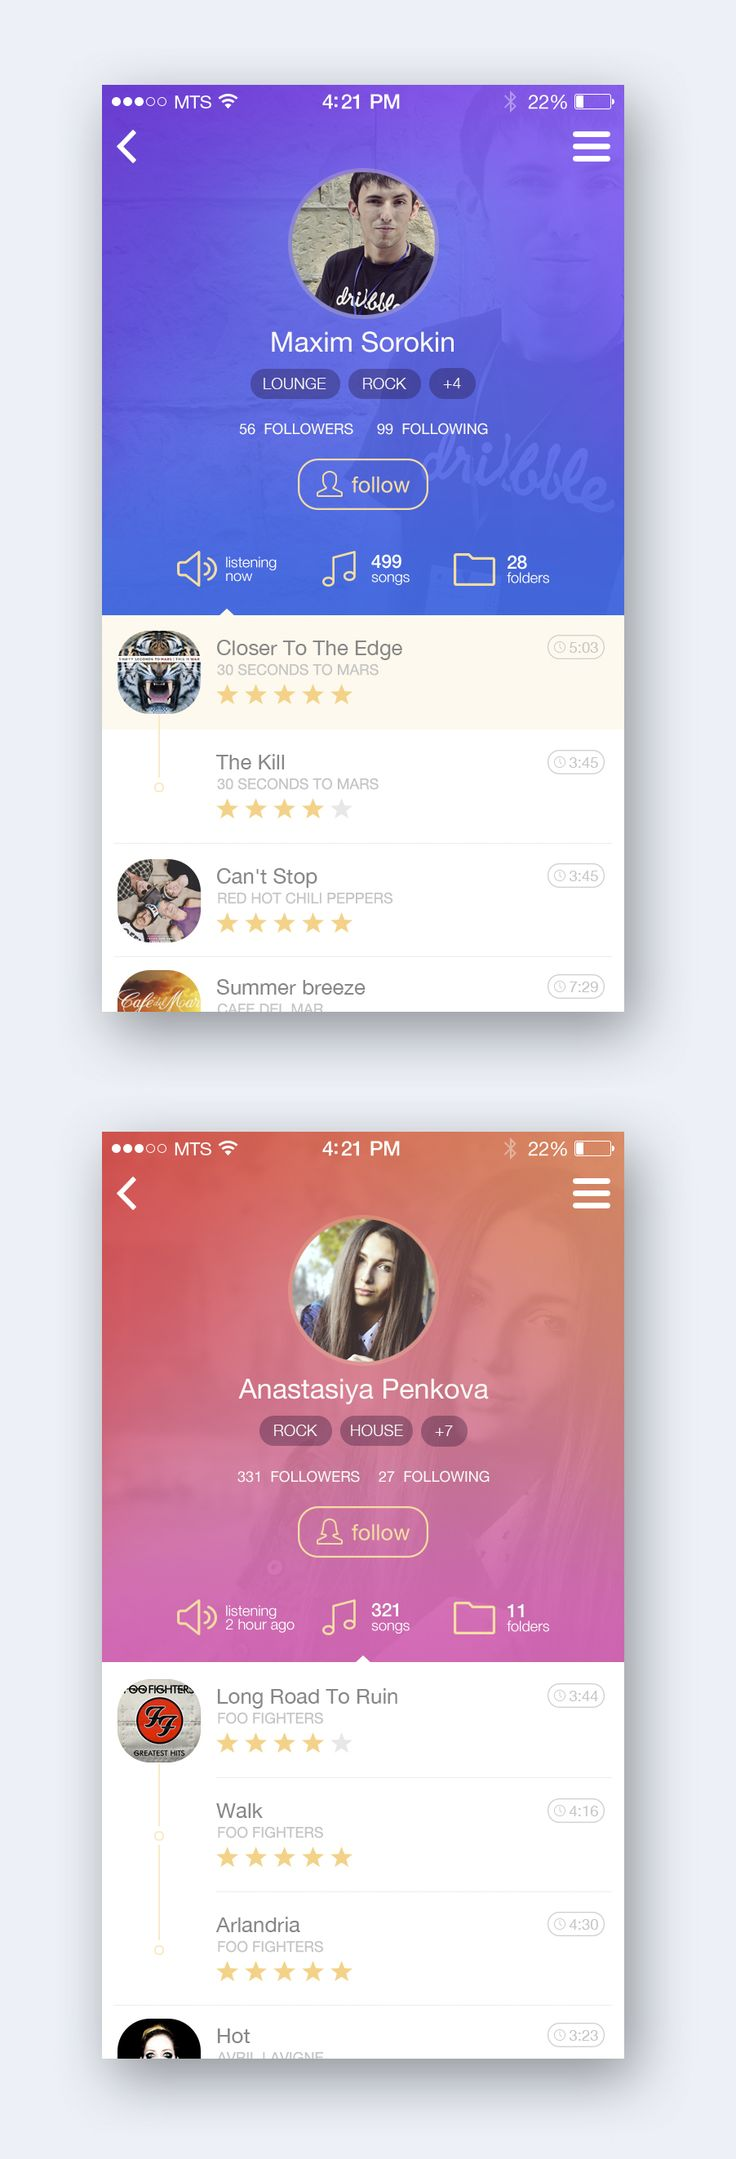 Music App Profile by Maxim Sorokin |  #appdesign #interface #design